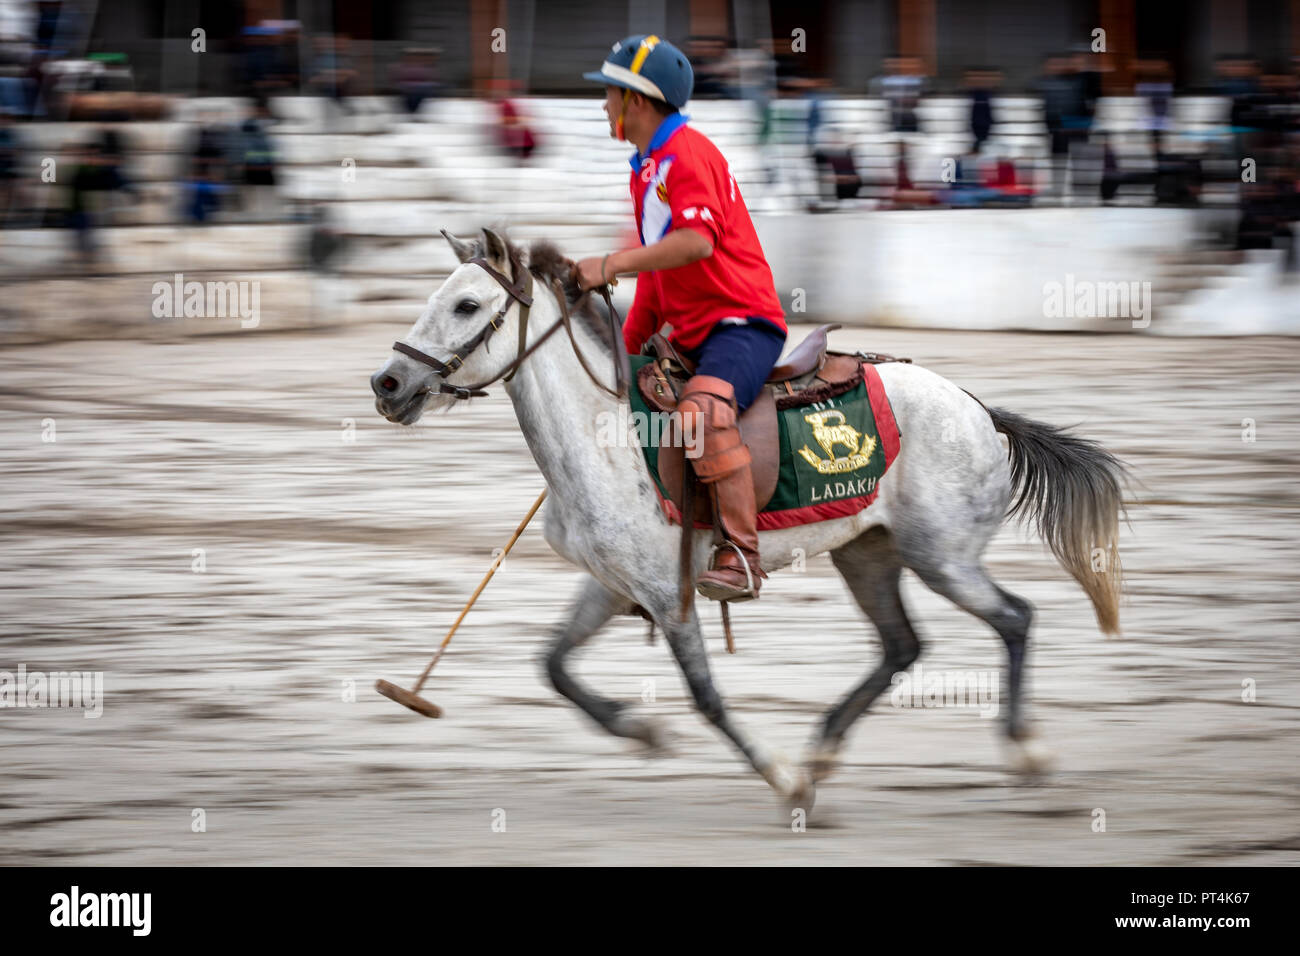 A polo match in Leh, Ladakh, India - Stock Image